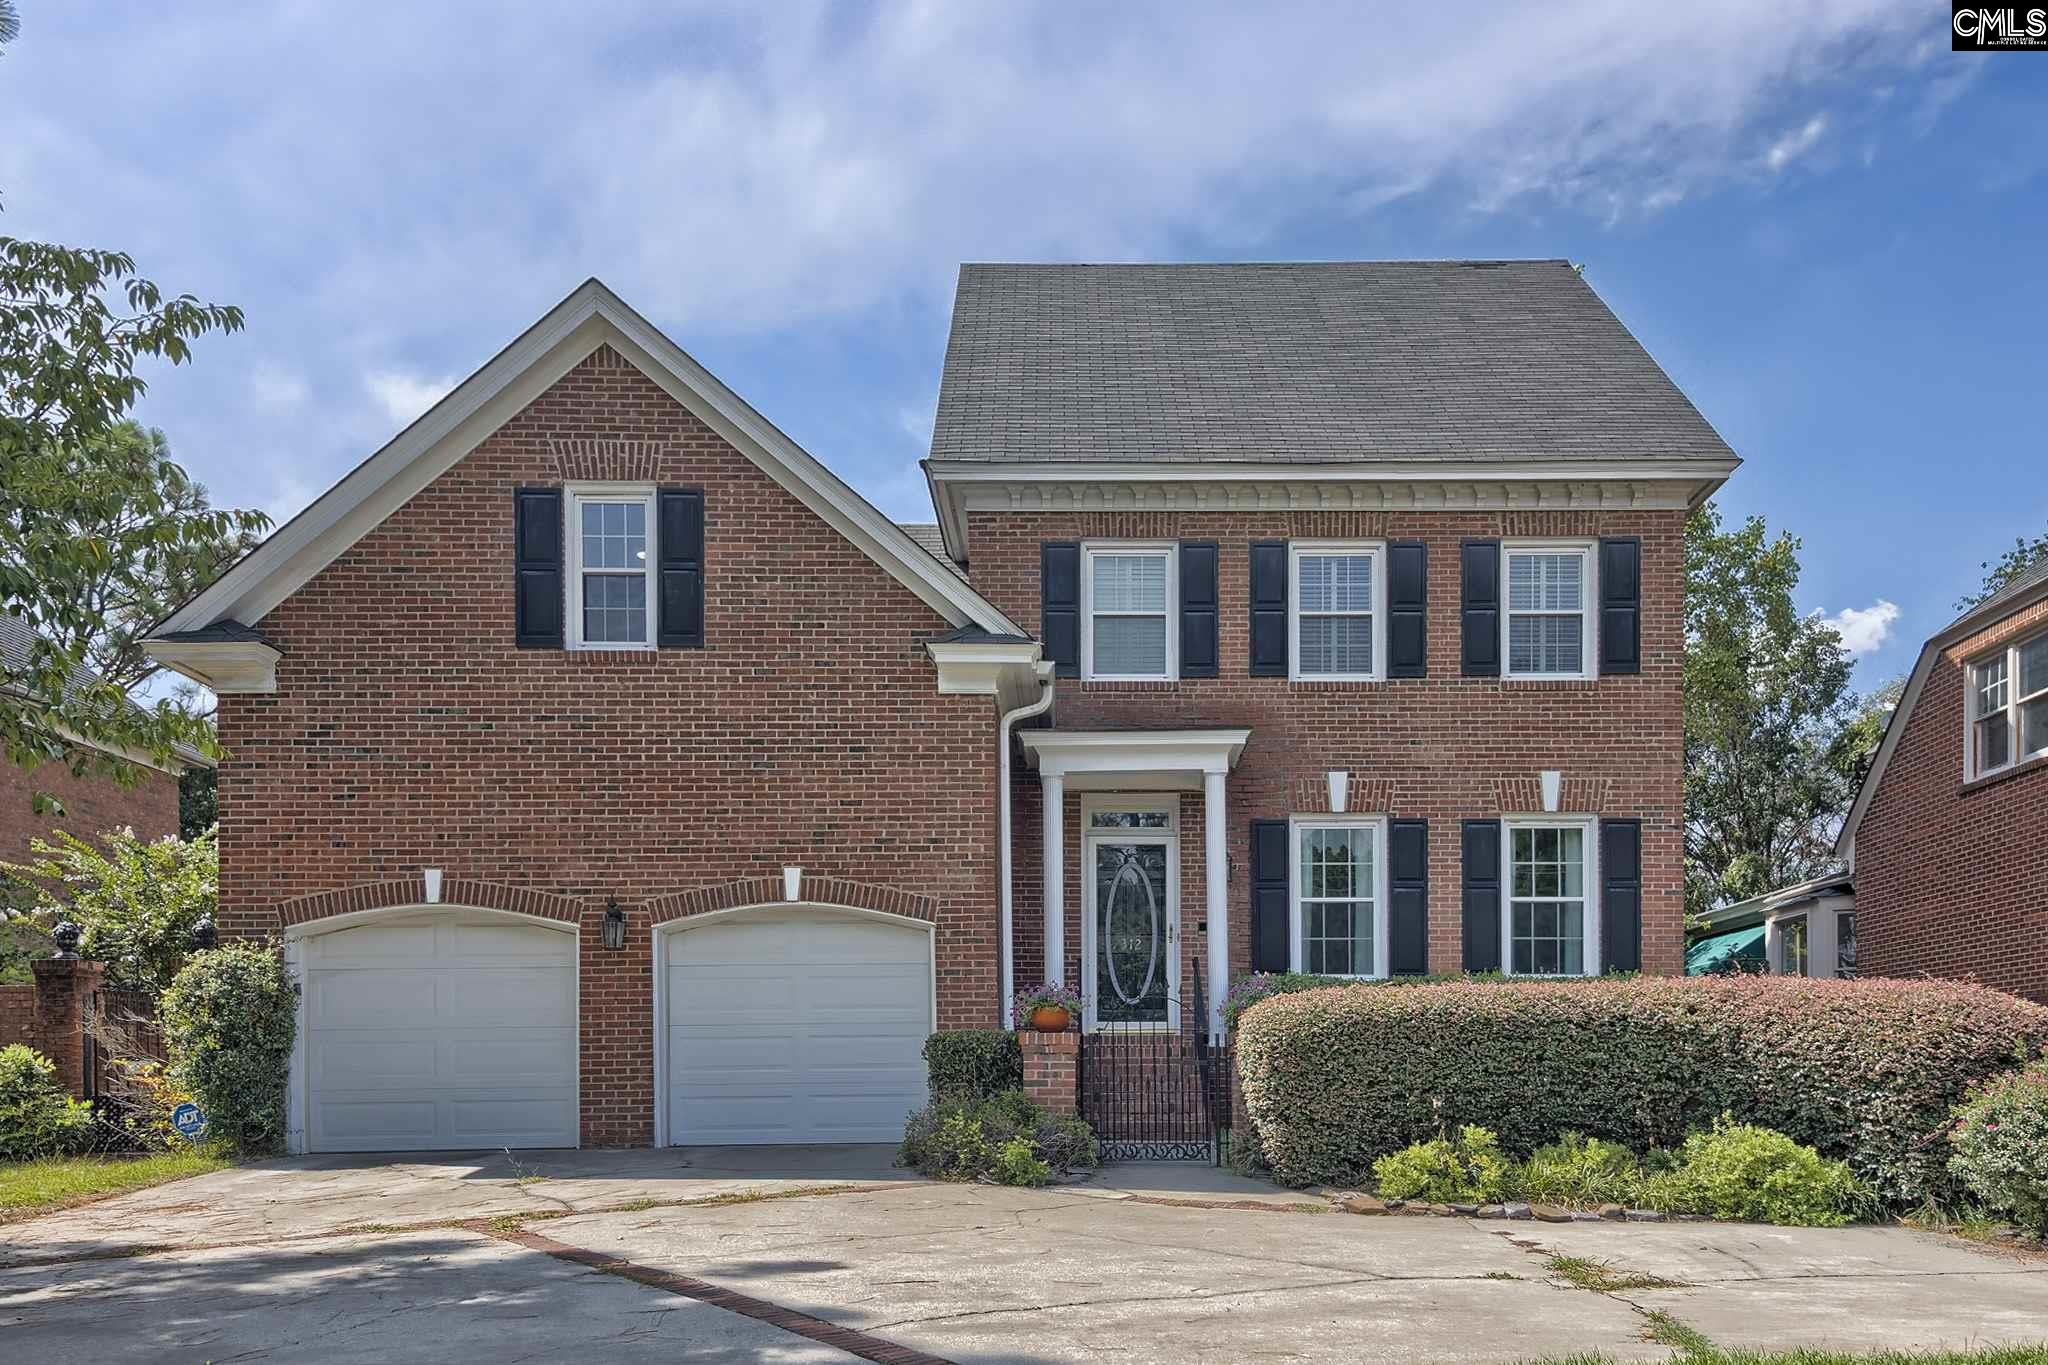 312 Mallet Hill Columbia, SC 29223-3223